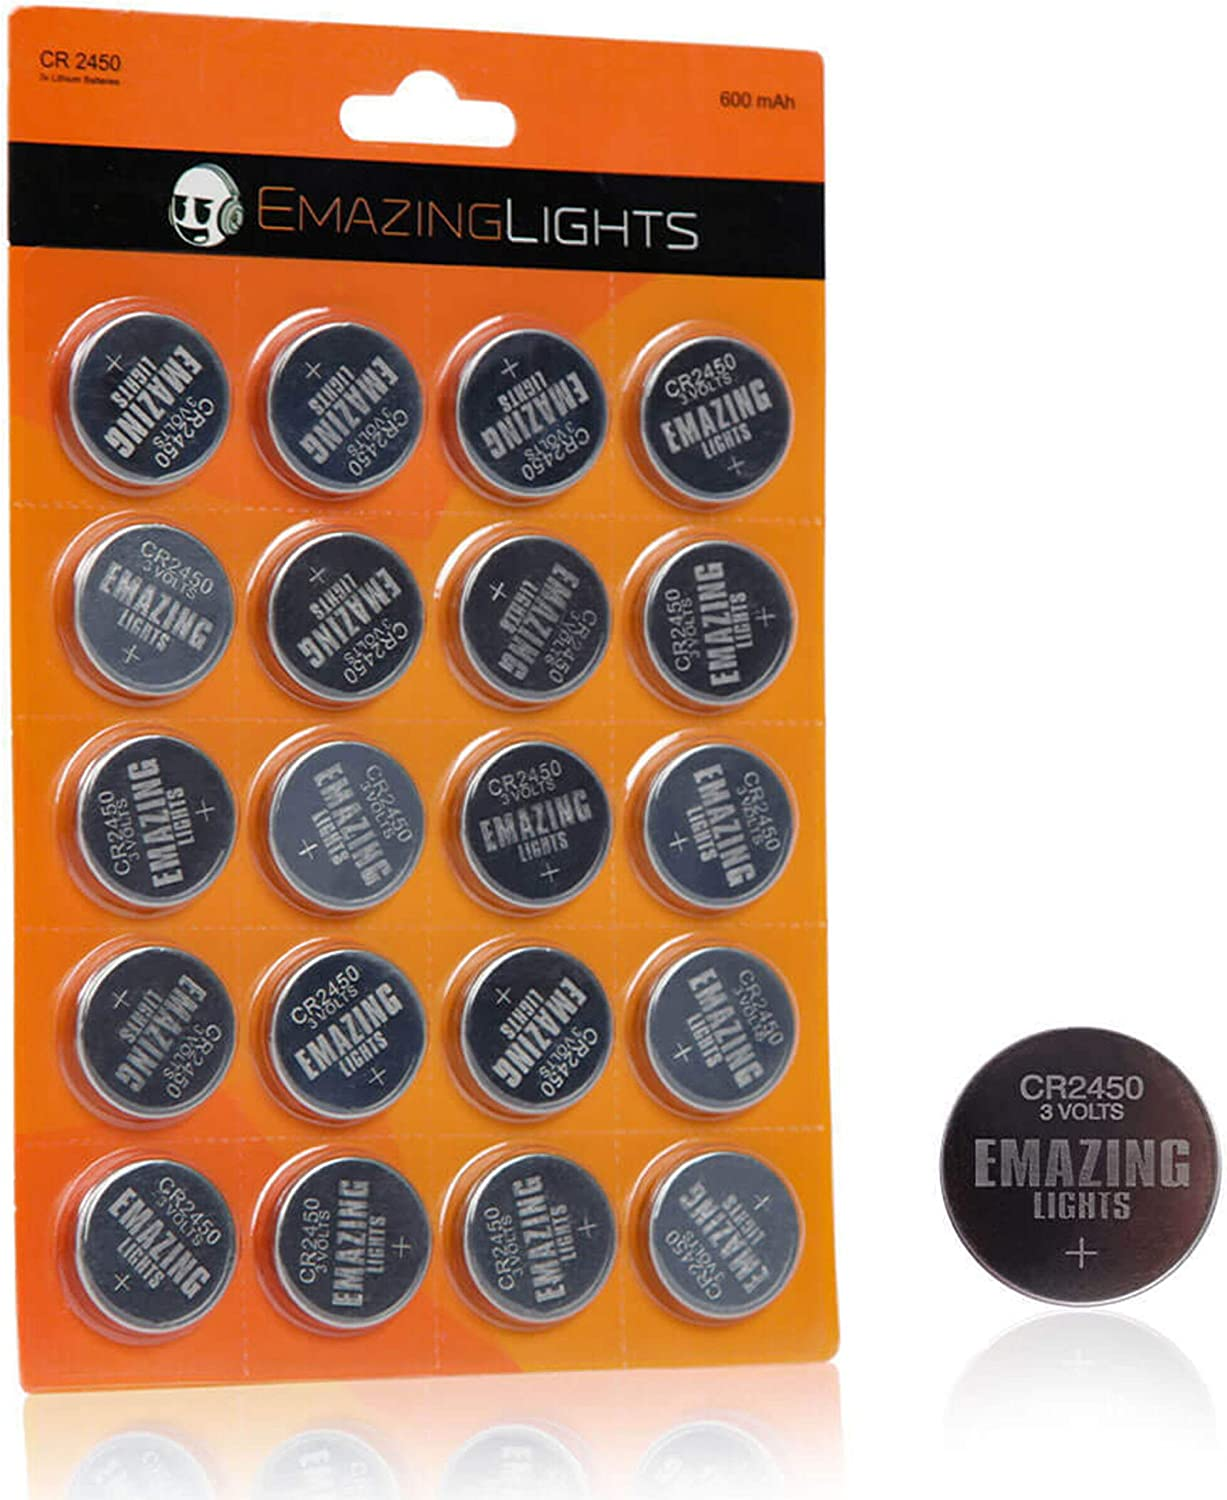 CR2450 Batteries 20 Pack 3V Lithium Button Cell Battery Pack EmazingLights: Health & Personal Care